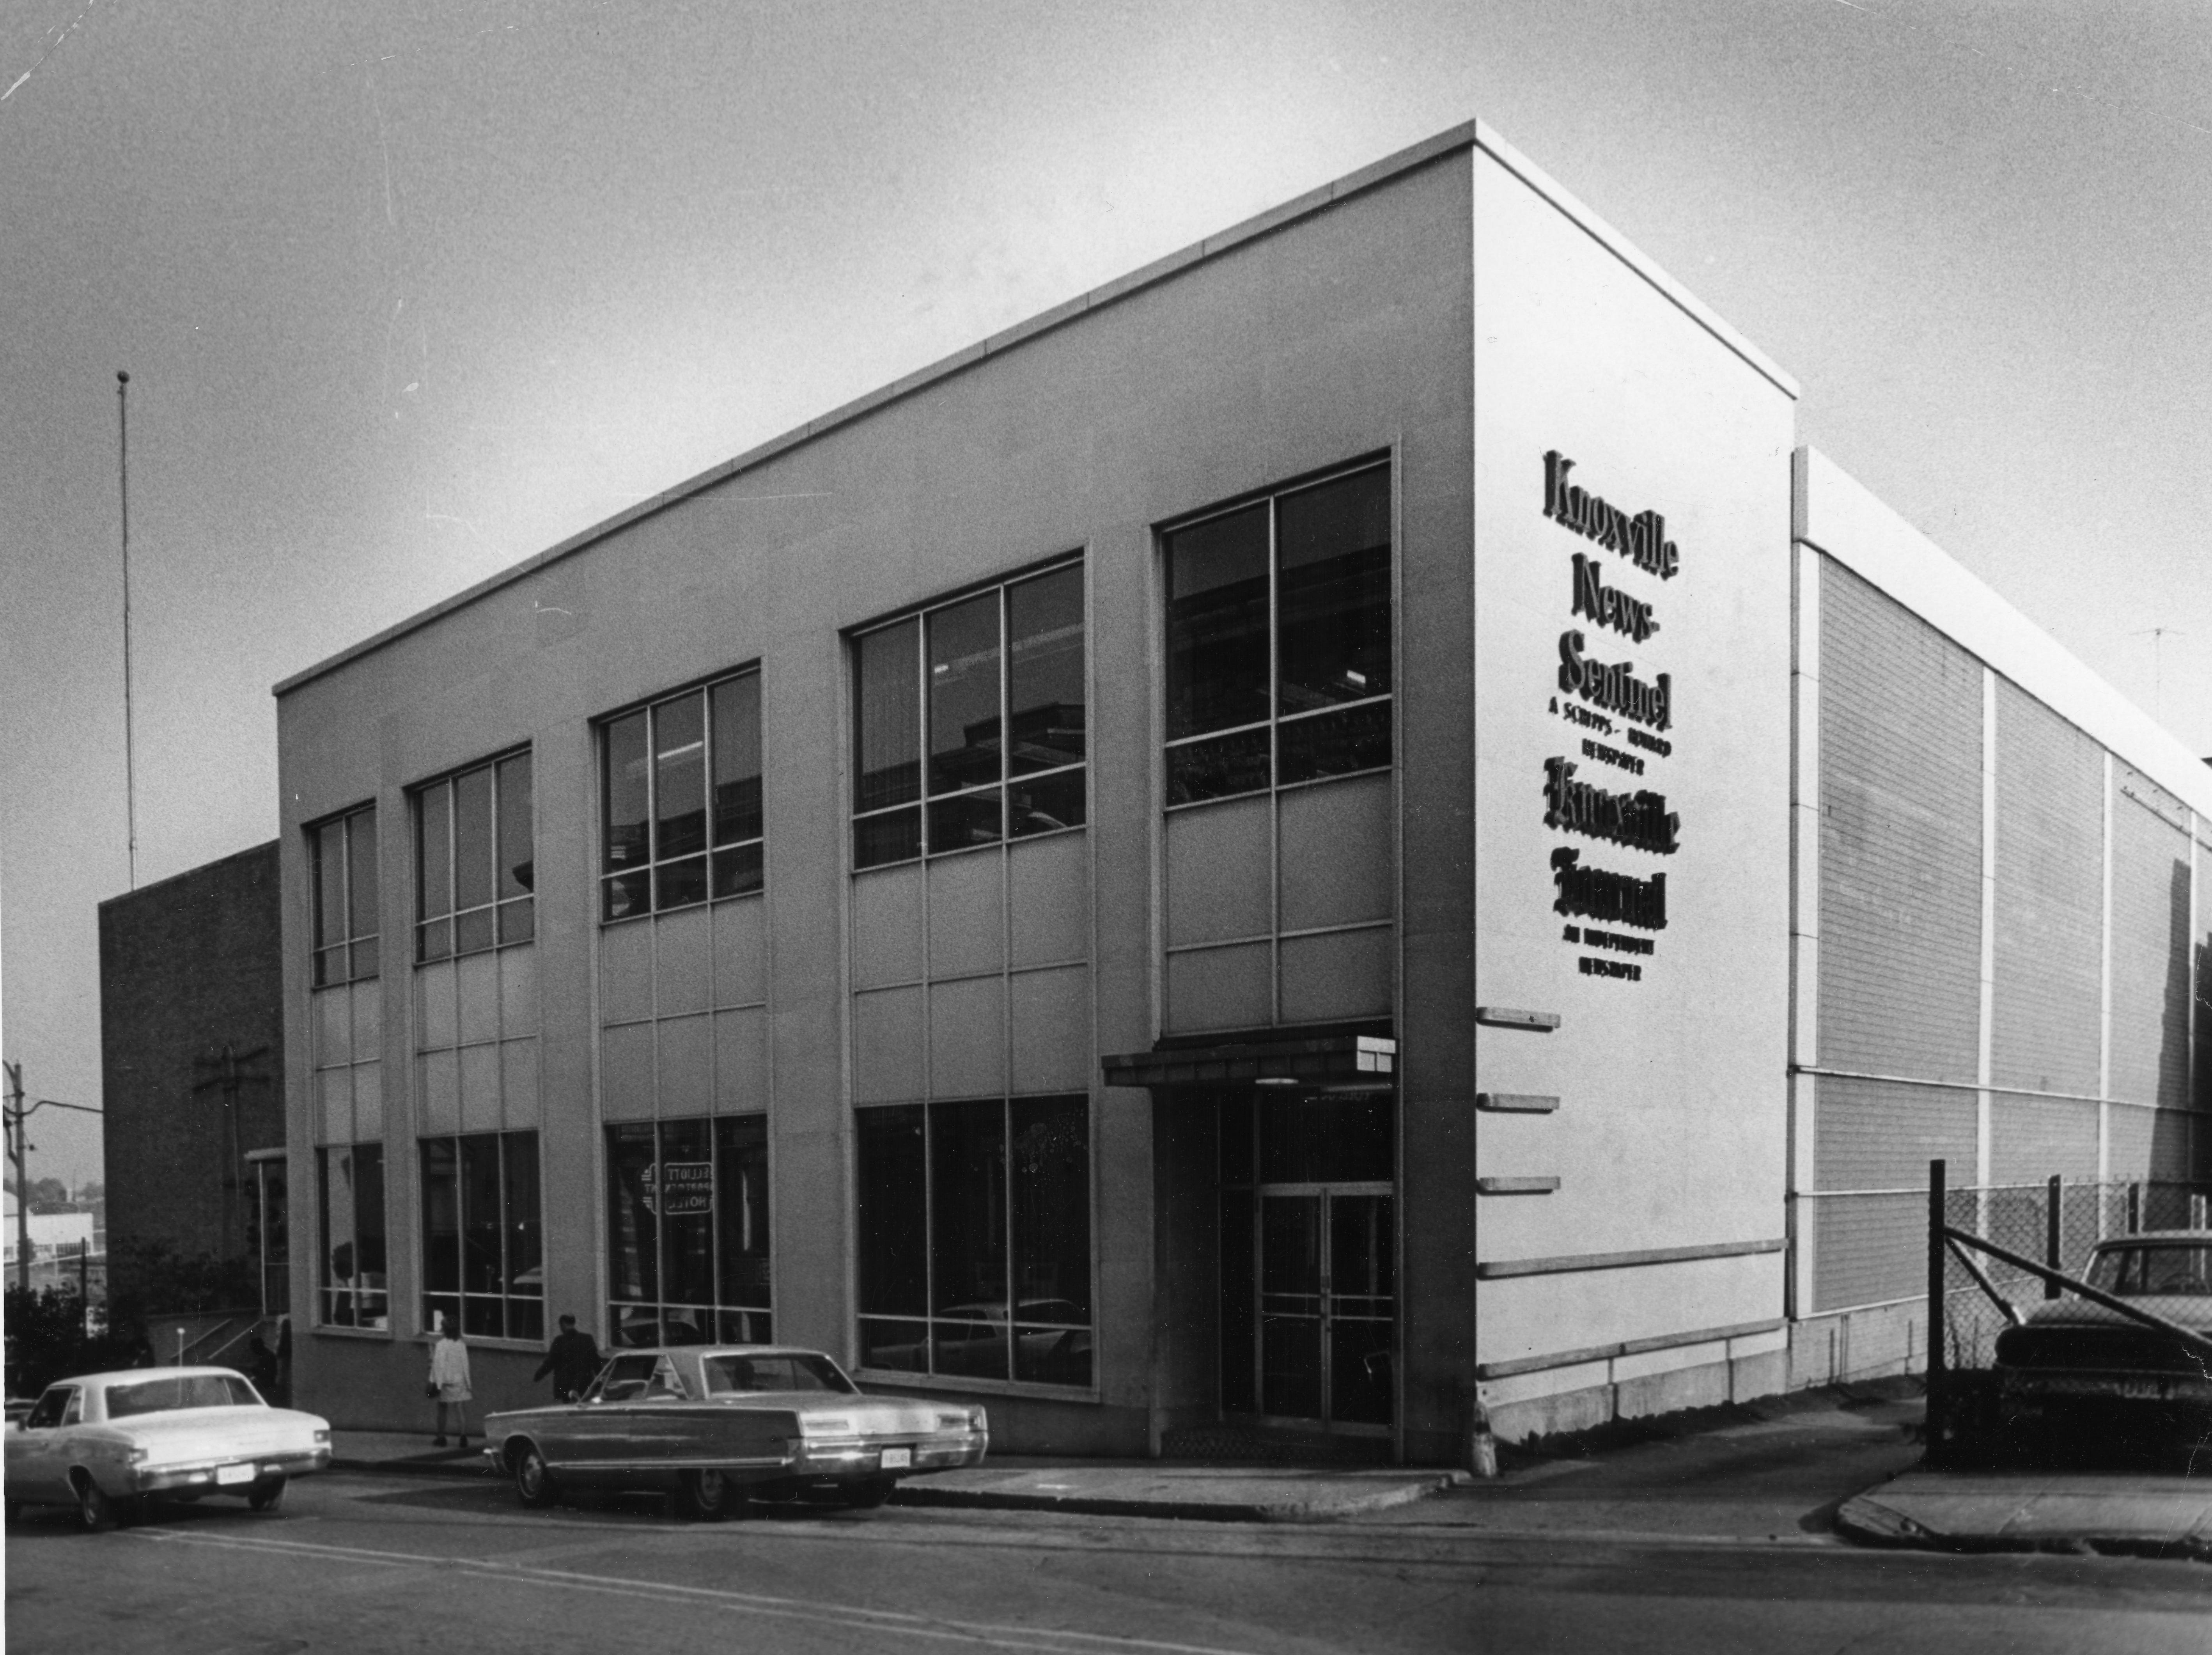 The Knoxville News Sentinel Building as seen in 1971.